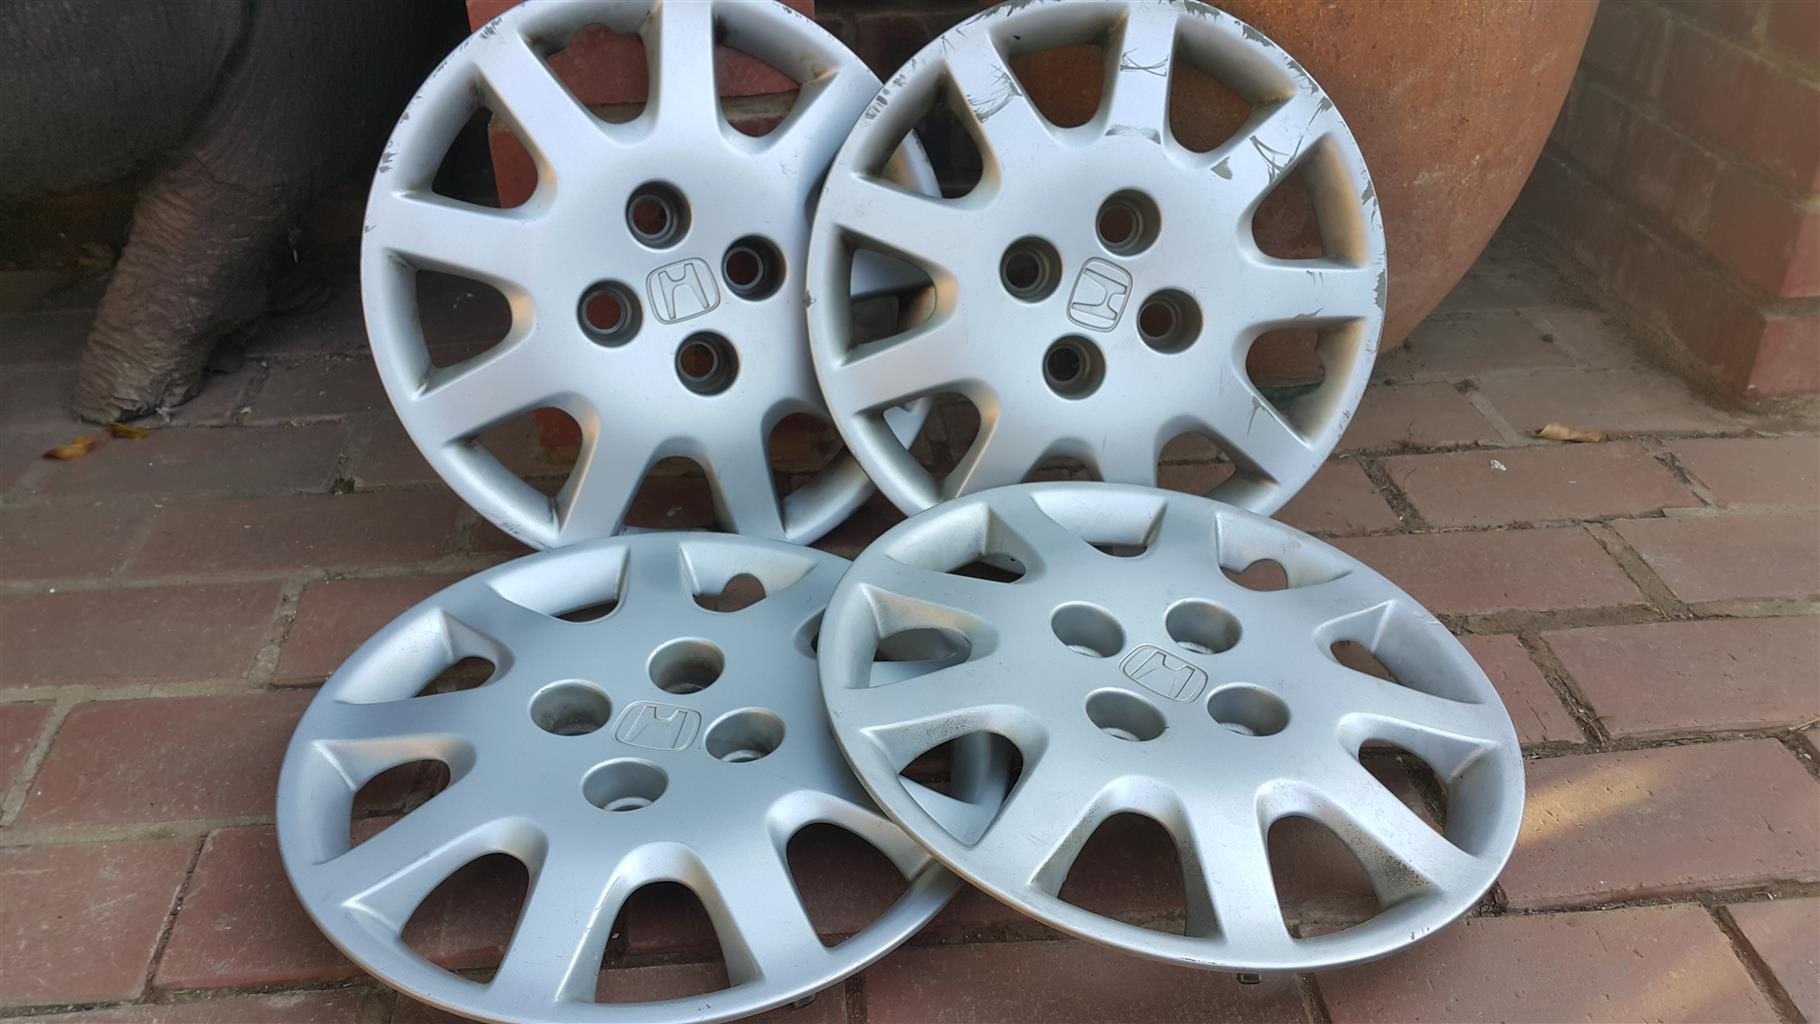 Honda Civic 1.5i wheel hubs for sale